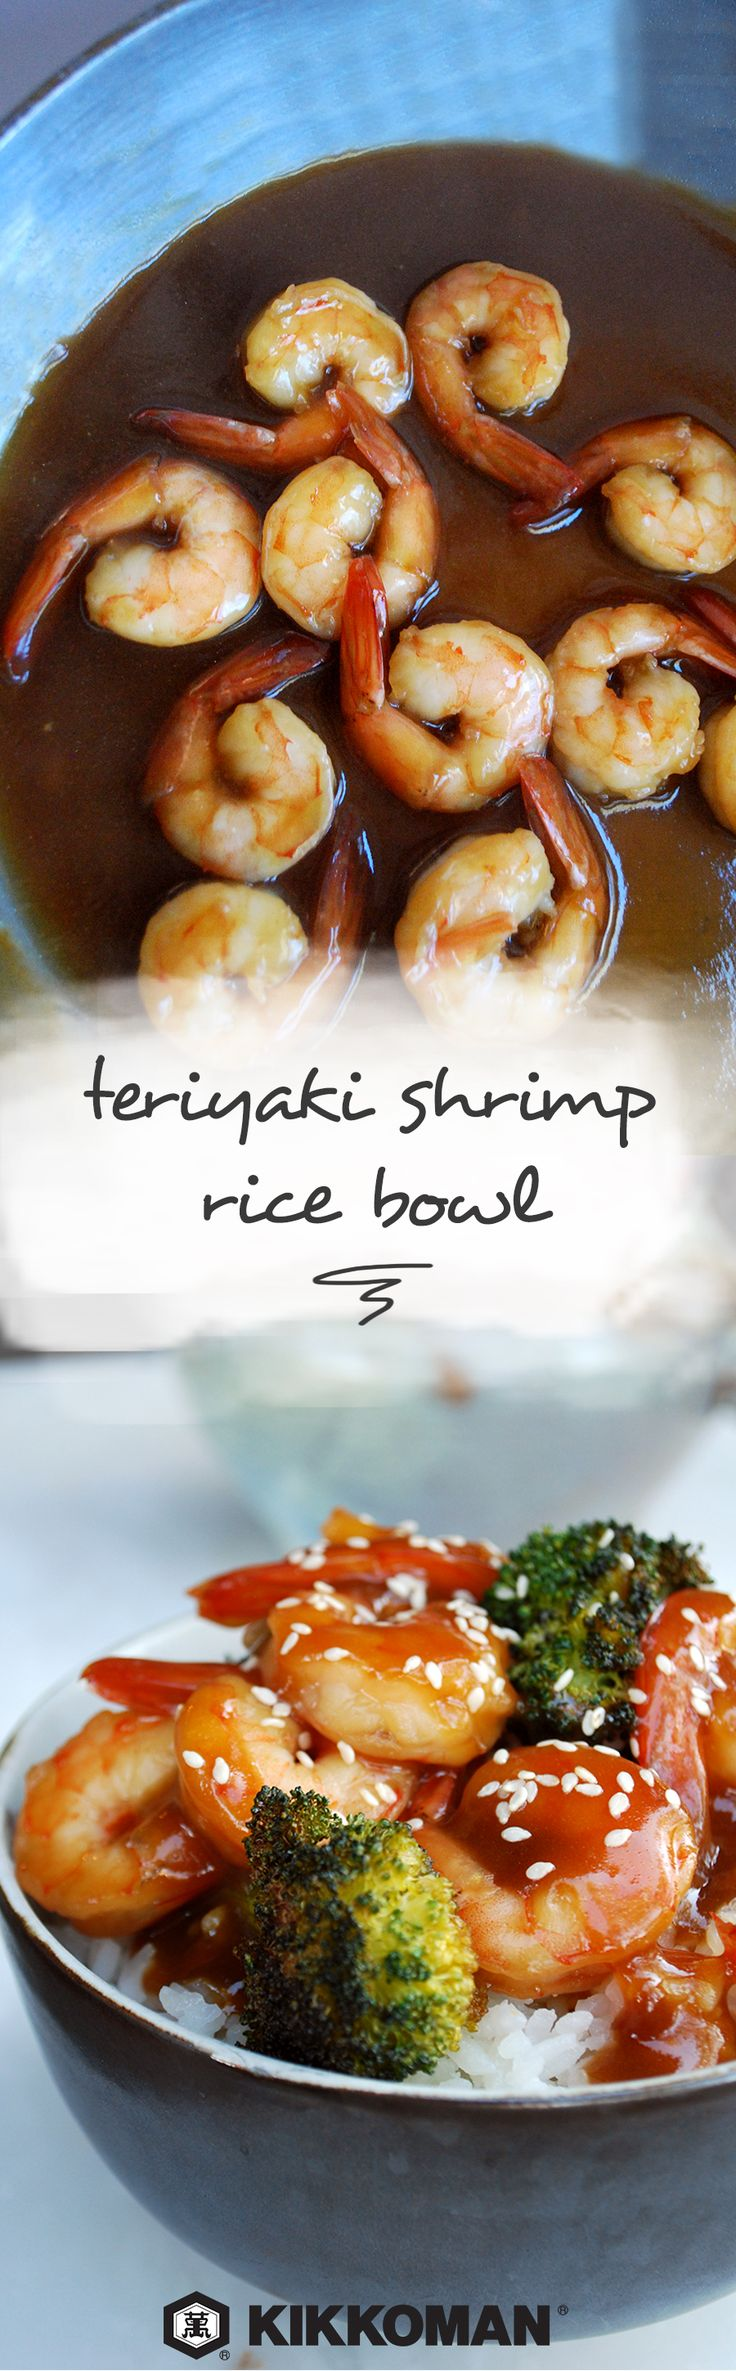 Teriyaki and shrimp are a match made in seafood heaven. Your Teriyaki Shrimp Rice Bowl can easily be made gluten-free by substituting Kikkoman Gluten-Free Teriyaki Marinade & Sauce. Discover this simple and delicious dinner on the Kikkoman USA website, alongside a long list of new recipes and all your favorite Kikkoman sauces.